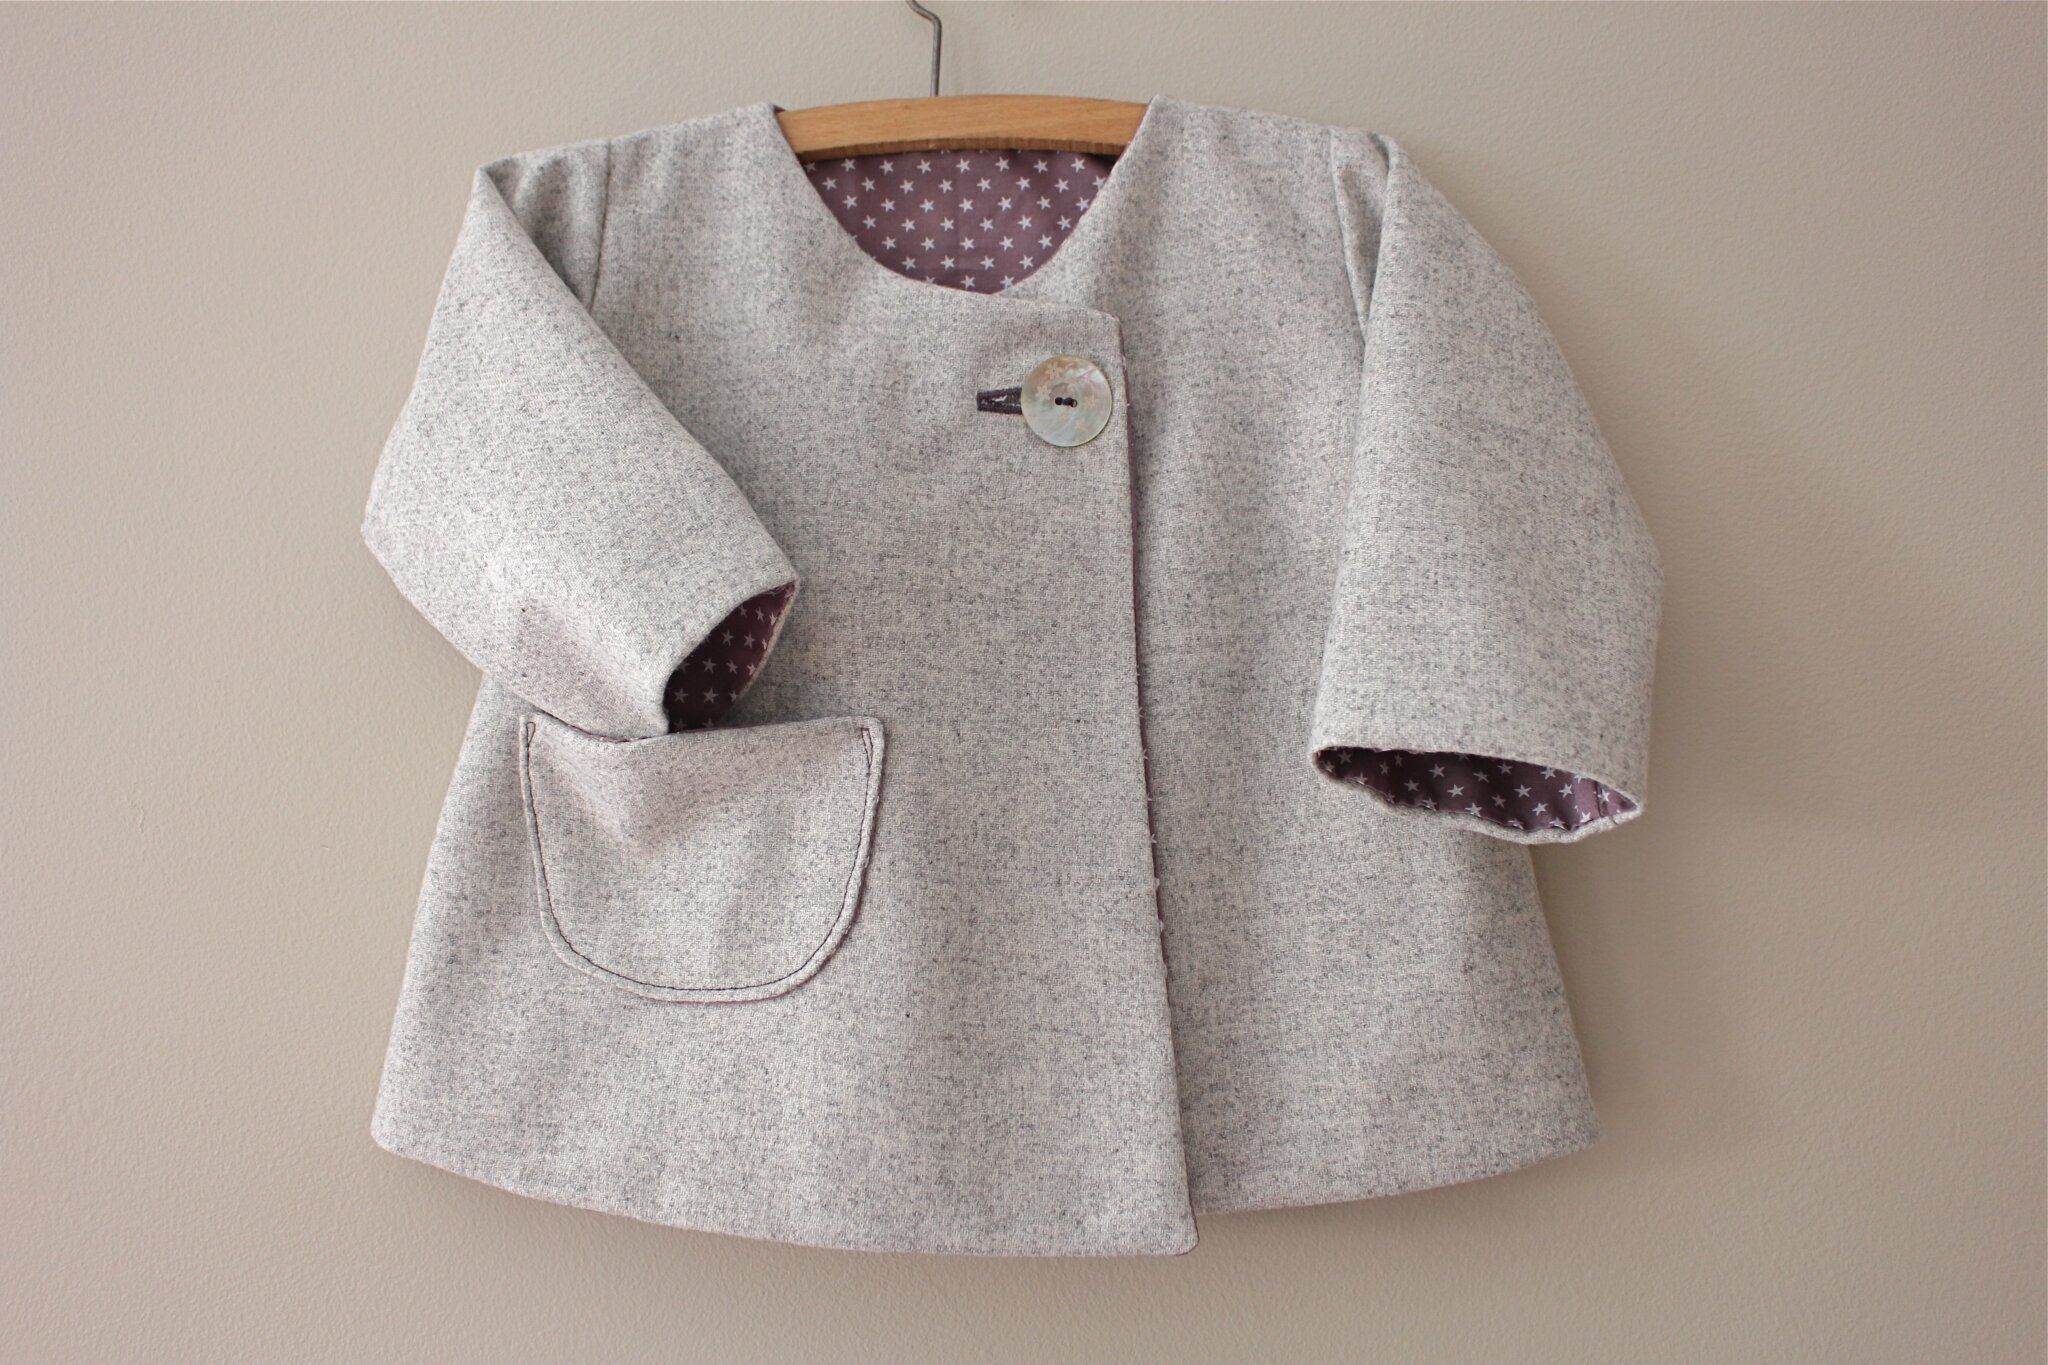 Manteau lainage Intemporels kids